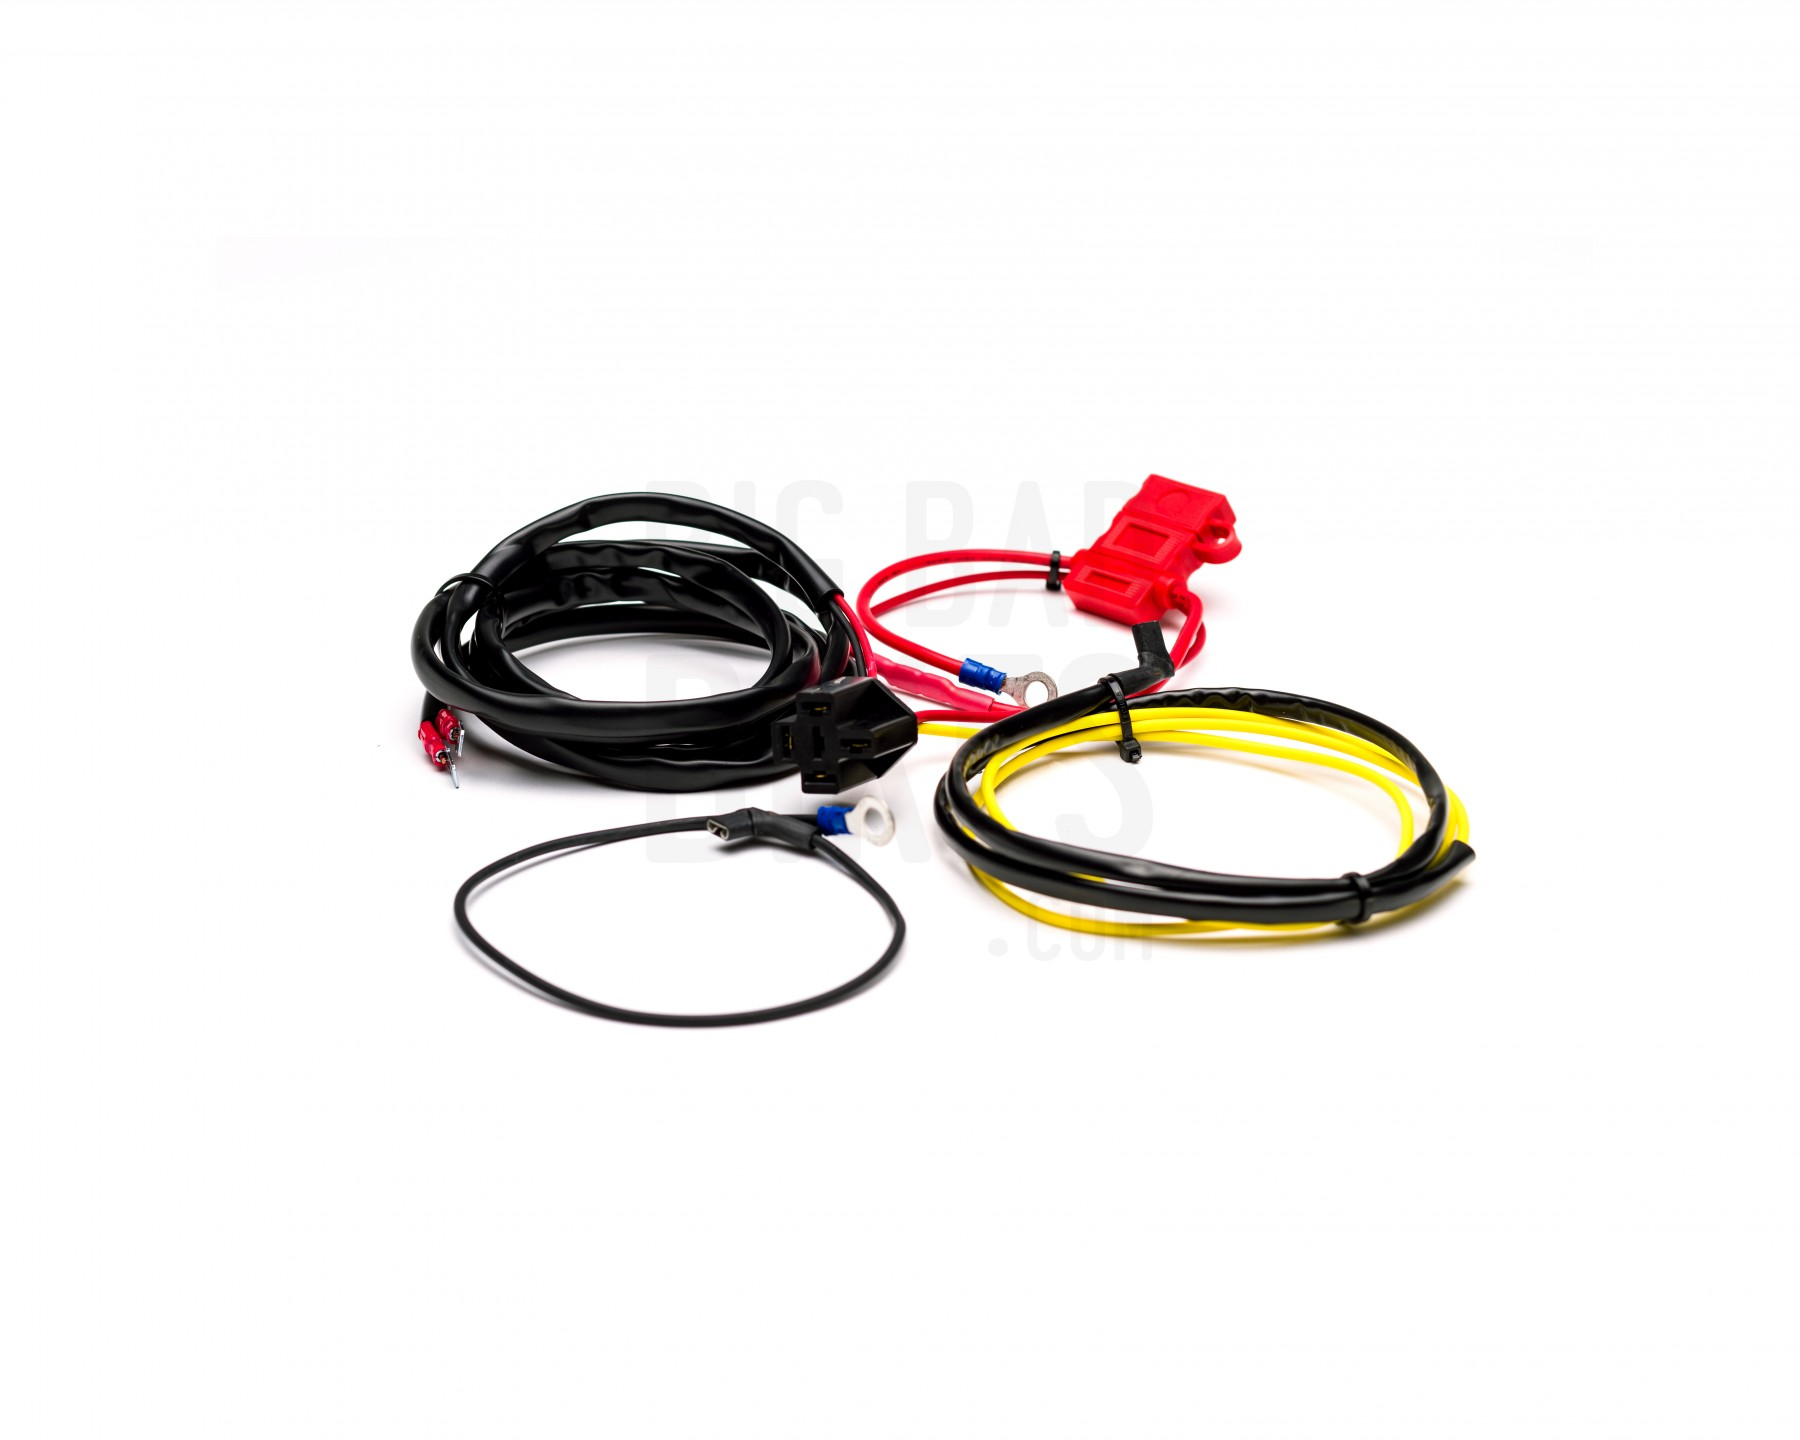 Denali Soundplug Amp Play Wiring Harness